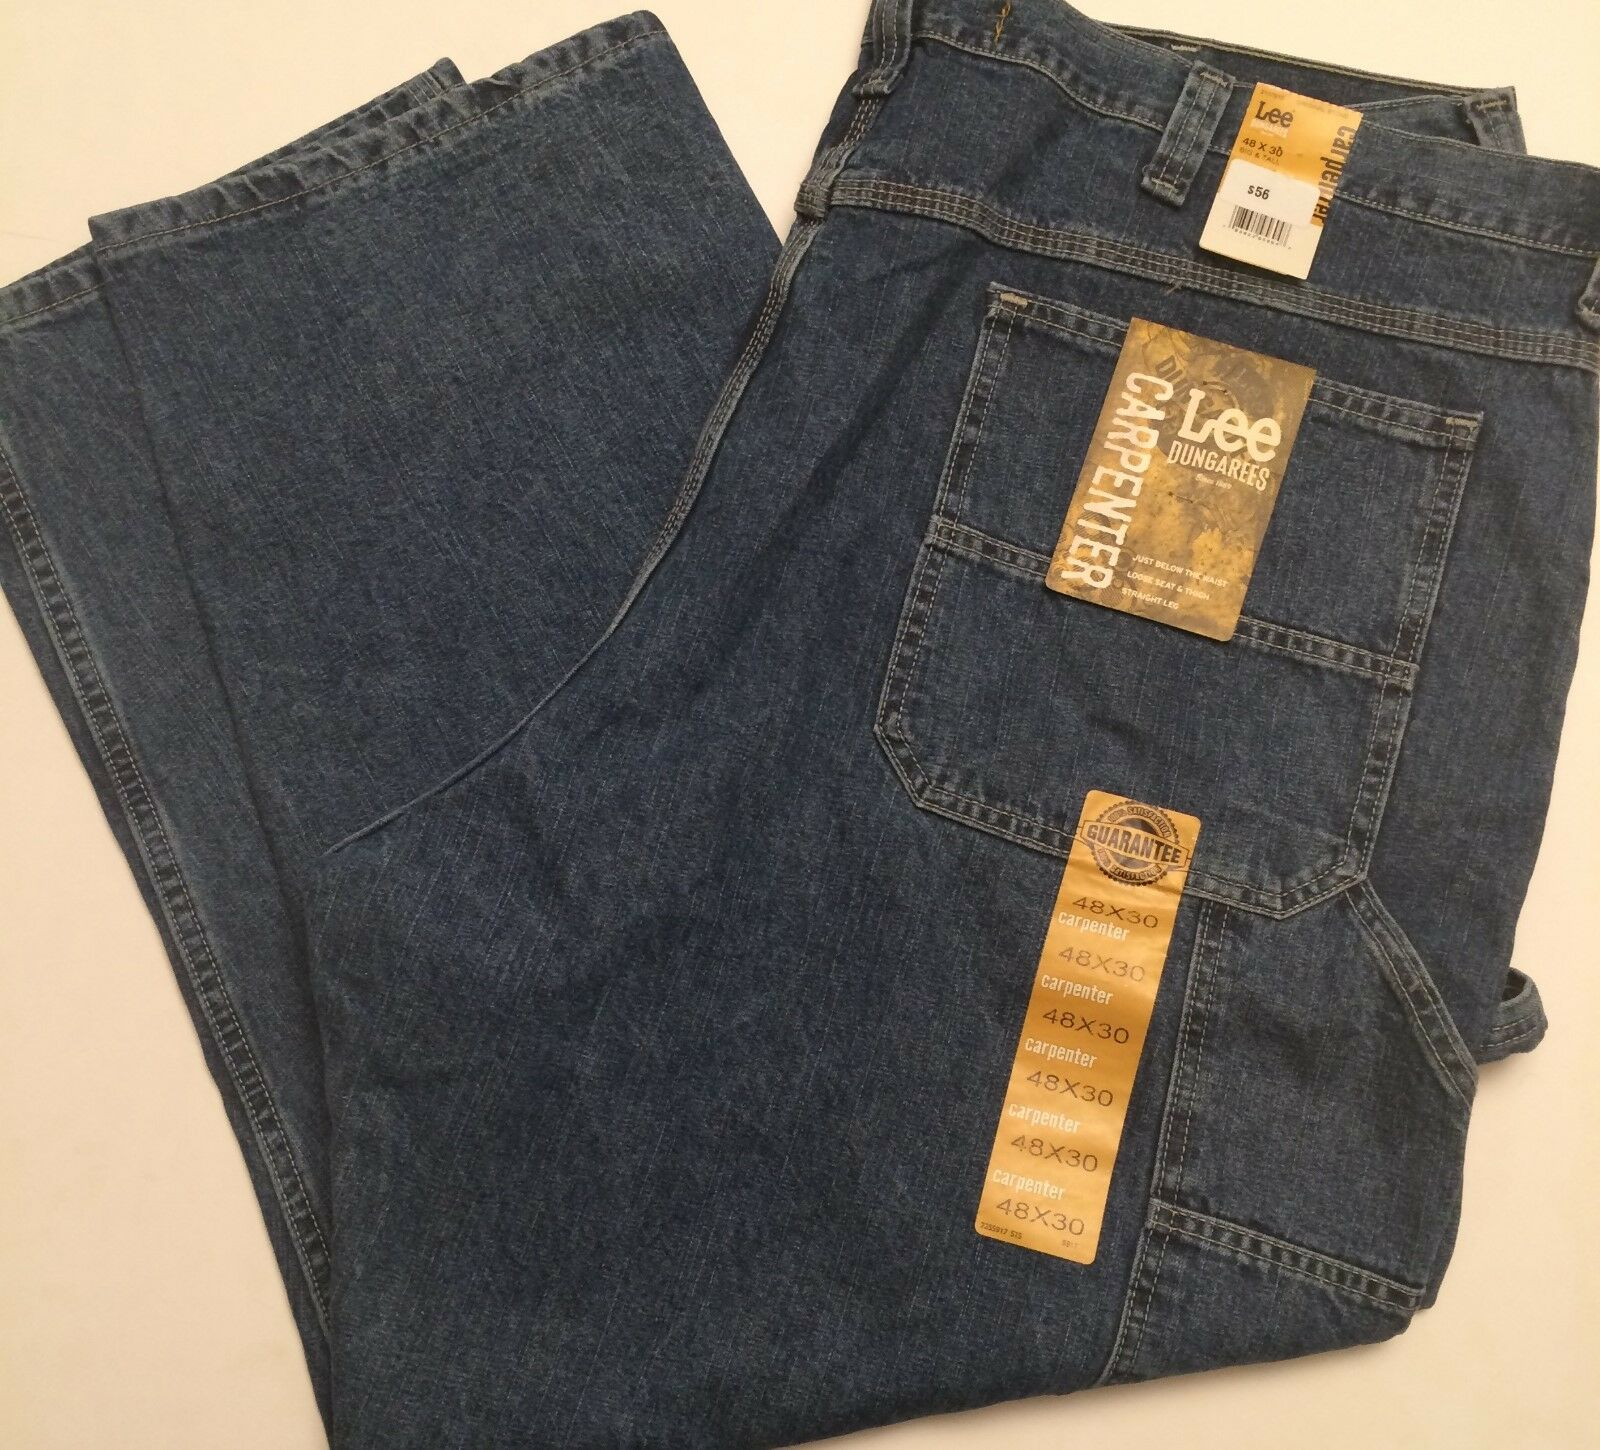 Lee Dungarees Jeans Mens Big Tall 48x30 Cotton Carpenter Loose Straight Leg NWT